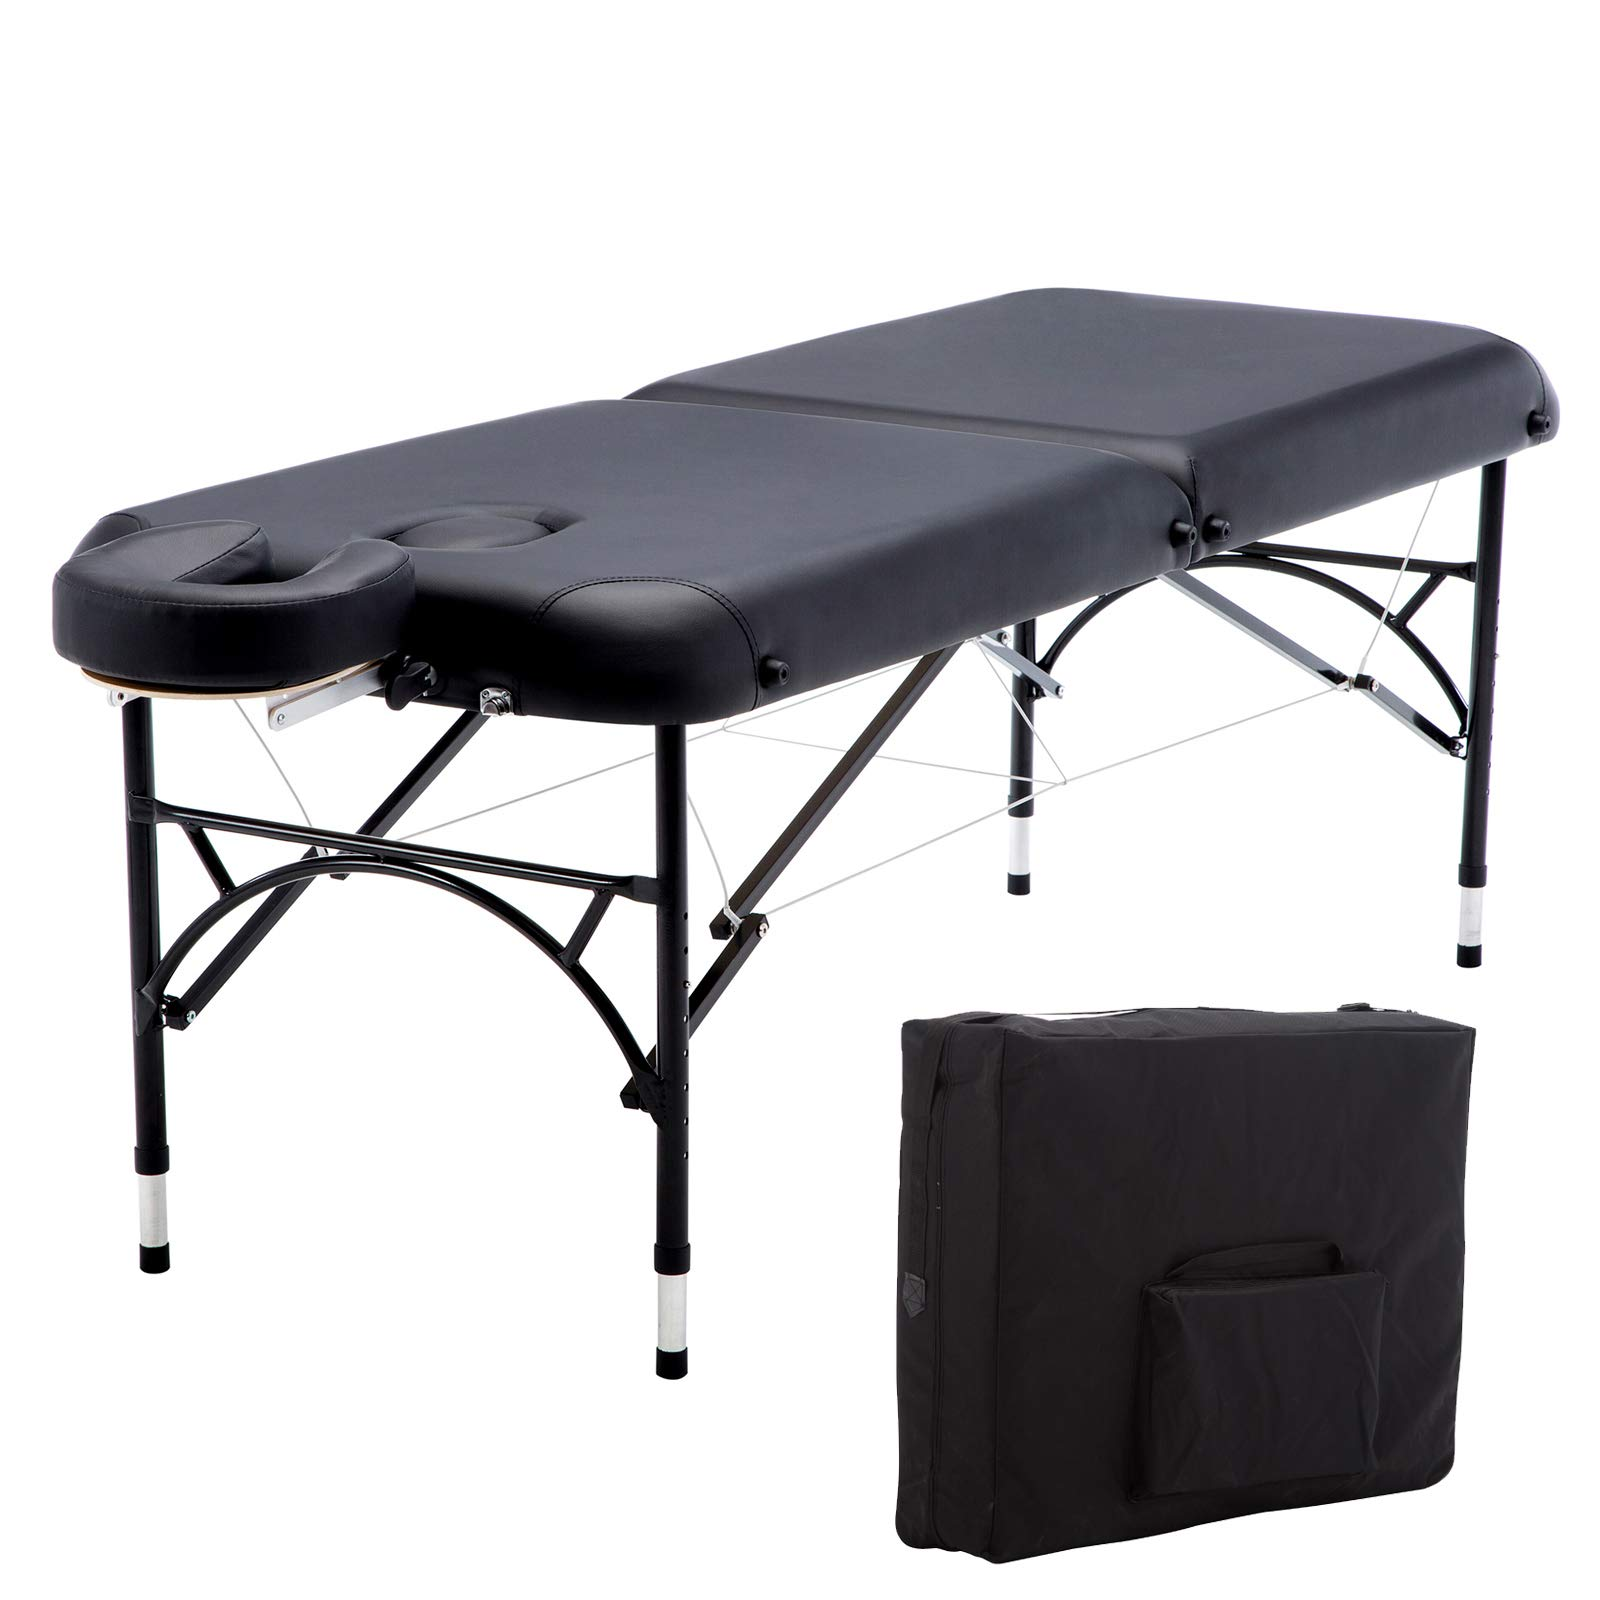 Artechworks 84'' Professional 2 Folding Portable Lightweight Massage Table Facial Solon Spa Tattoo Bed With Aluminium Leg(2.56'' Thick Cushion of Foam)